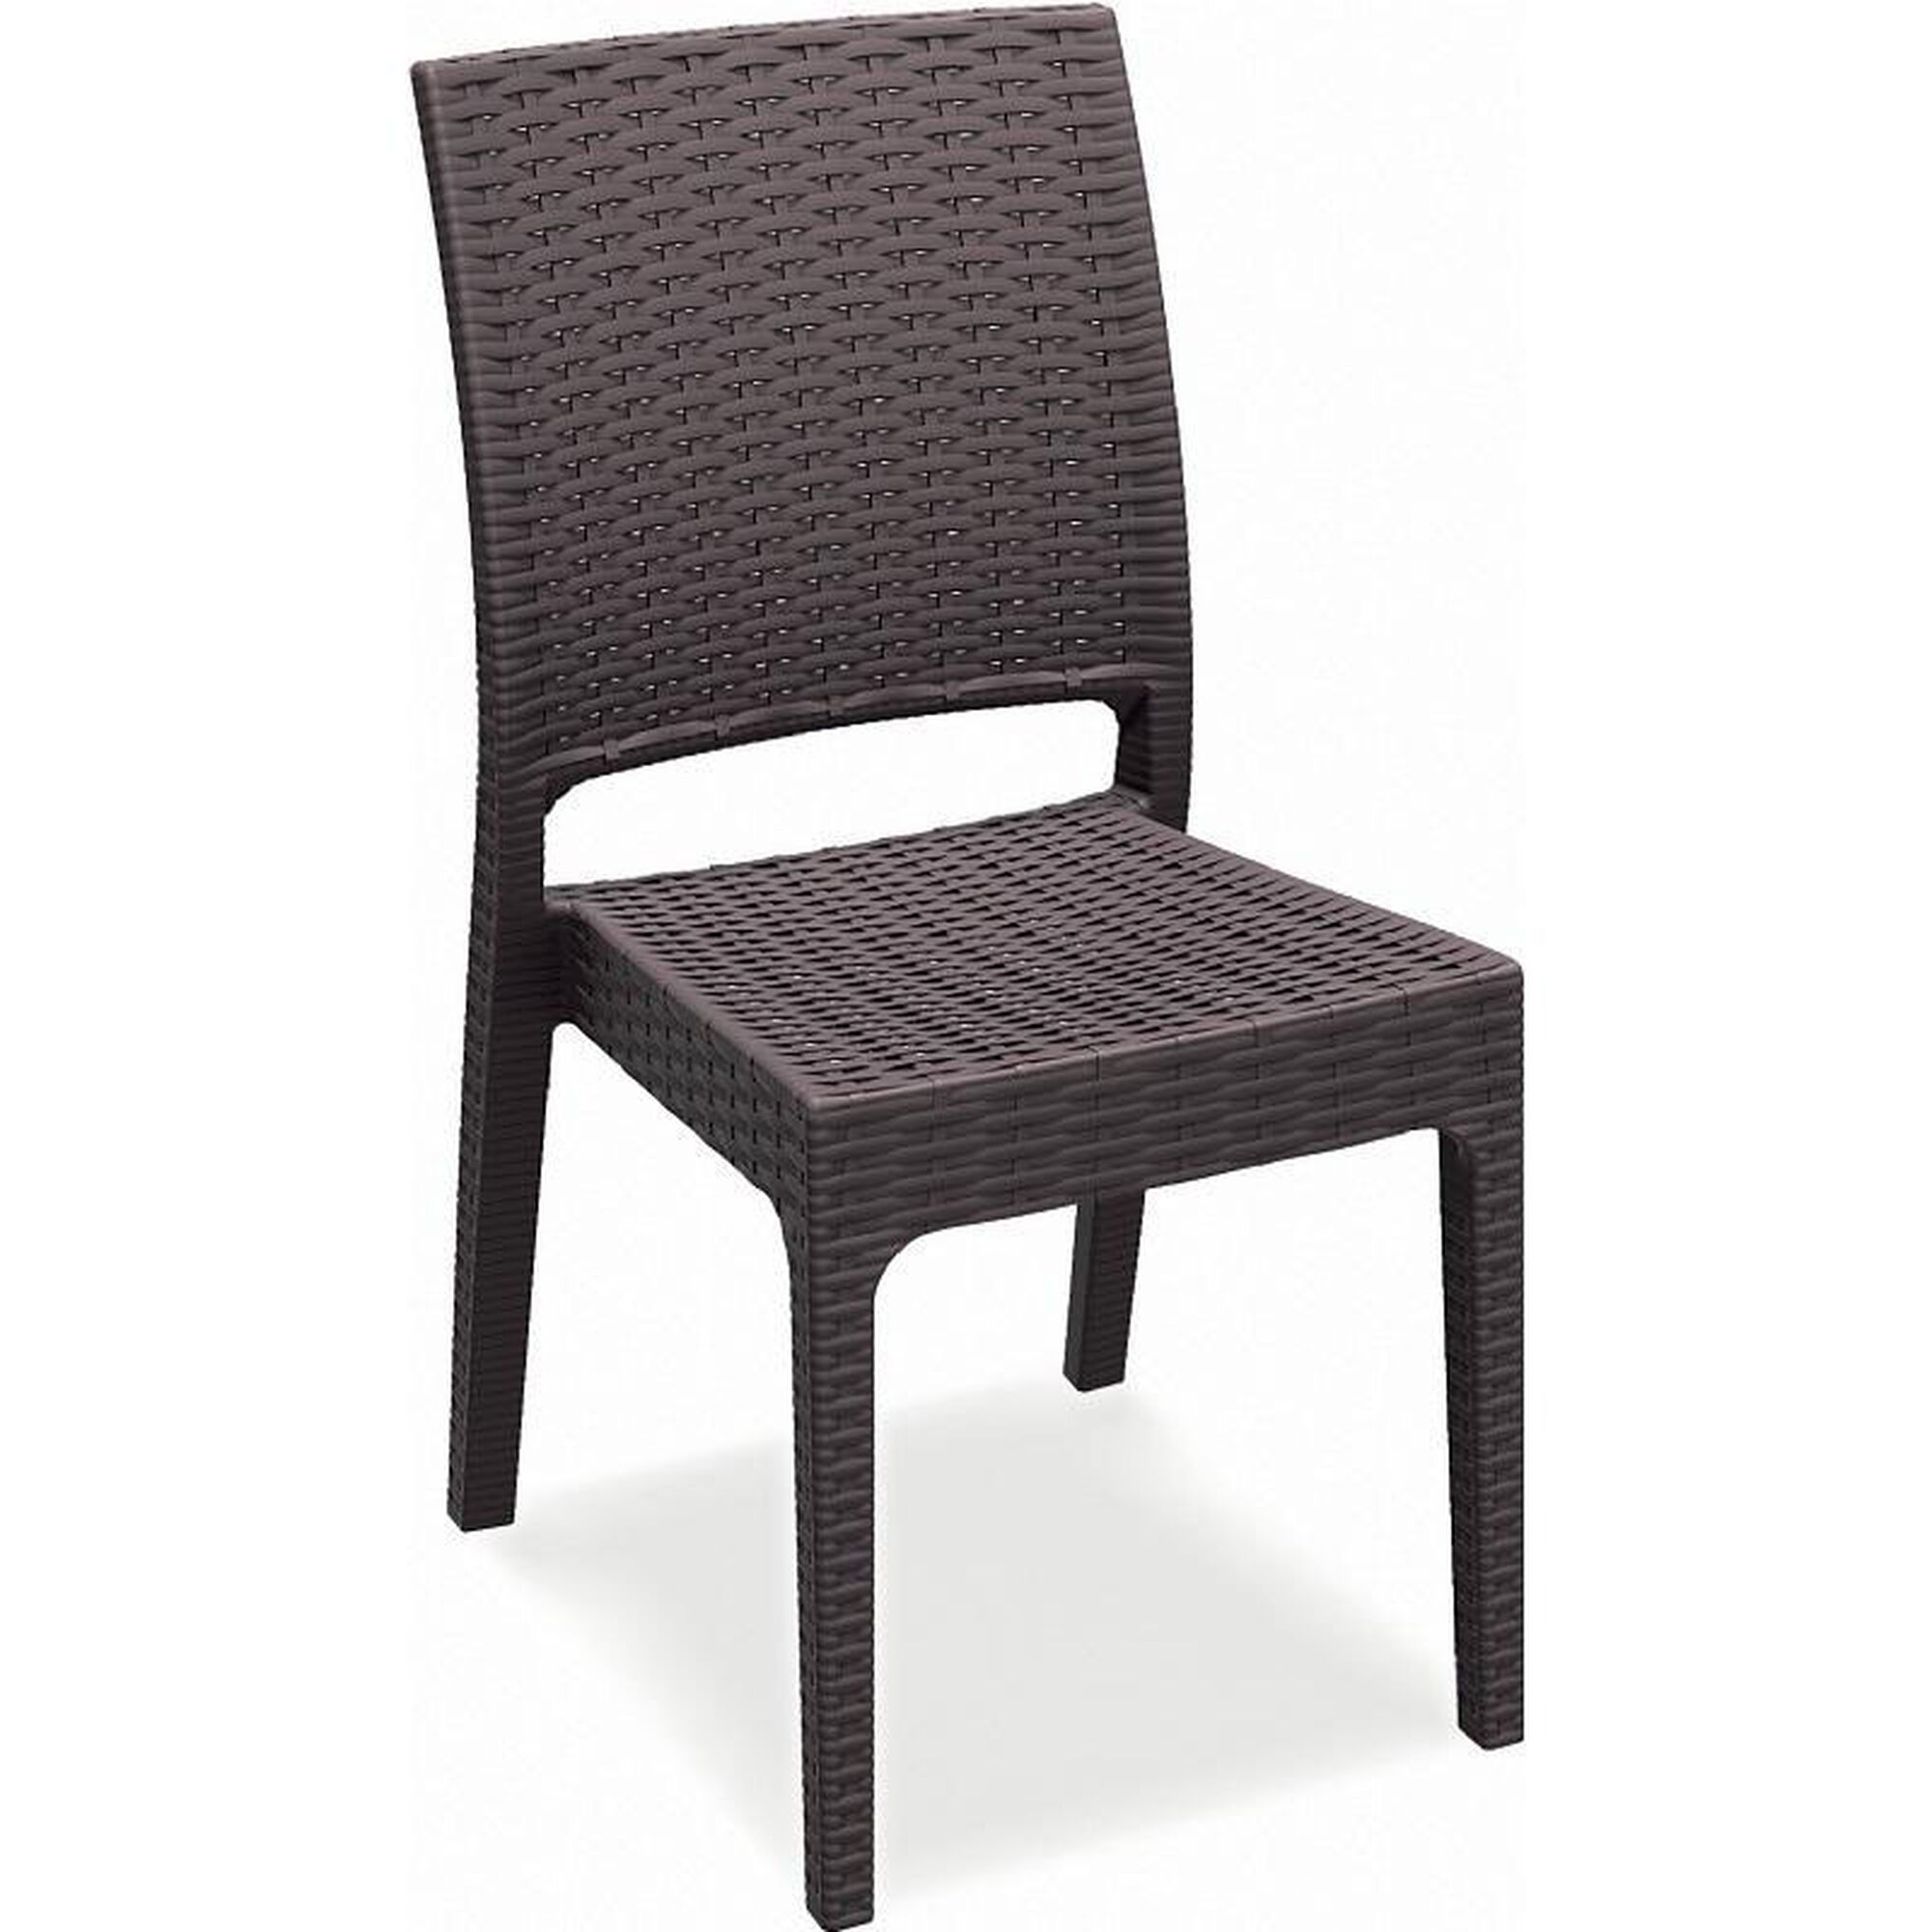 Awesome Florida Outdoor Wickerlook Resin Stackable Dining Chair Brown Ncnpc Chair Design For Home Ncnpcorg